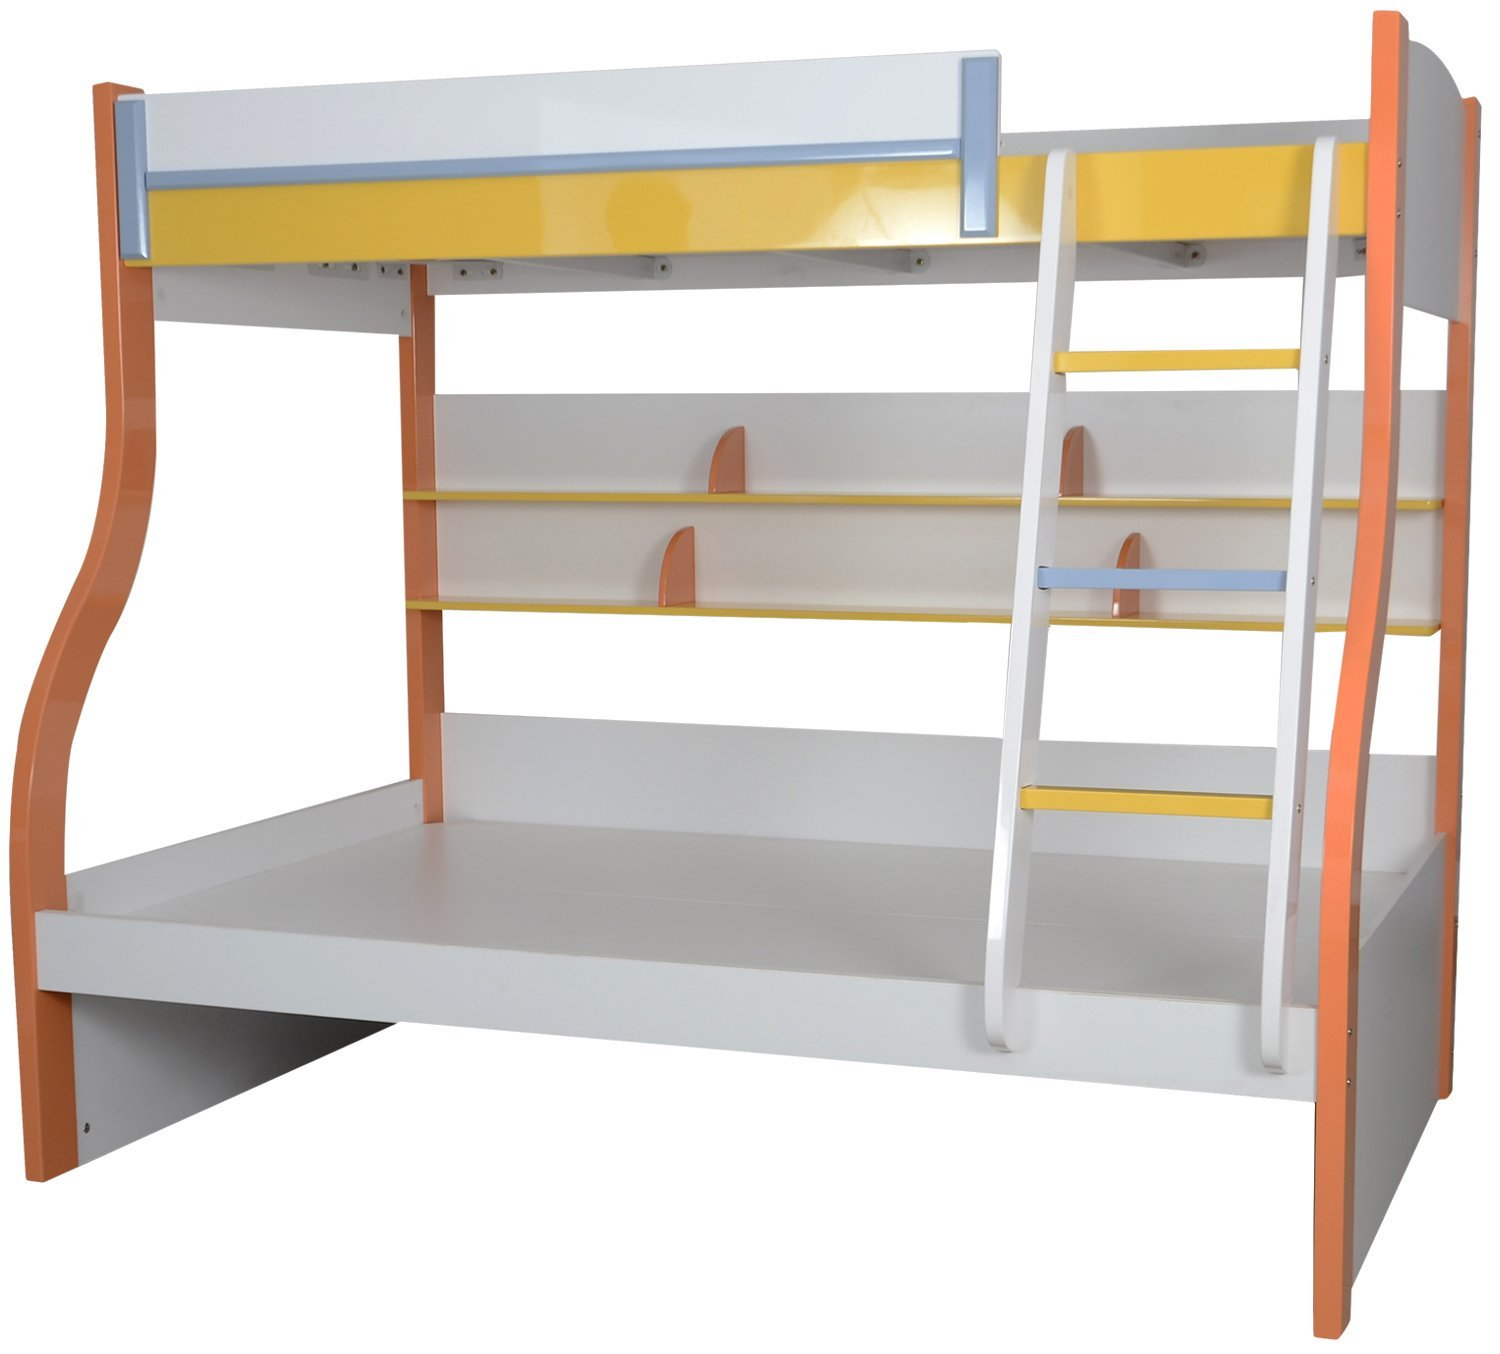 Buy bunk beds for kids online at kids kouch india How to buy a bed